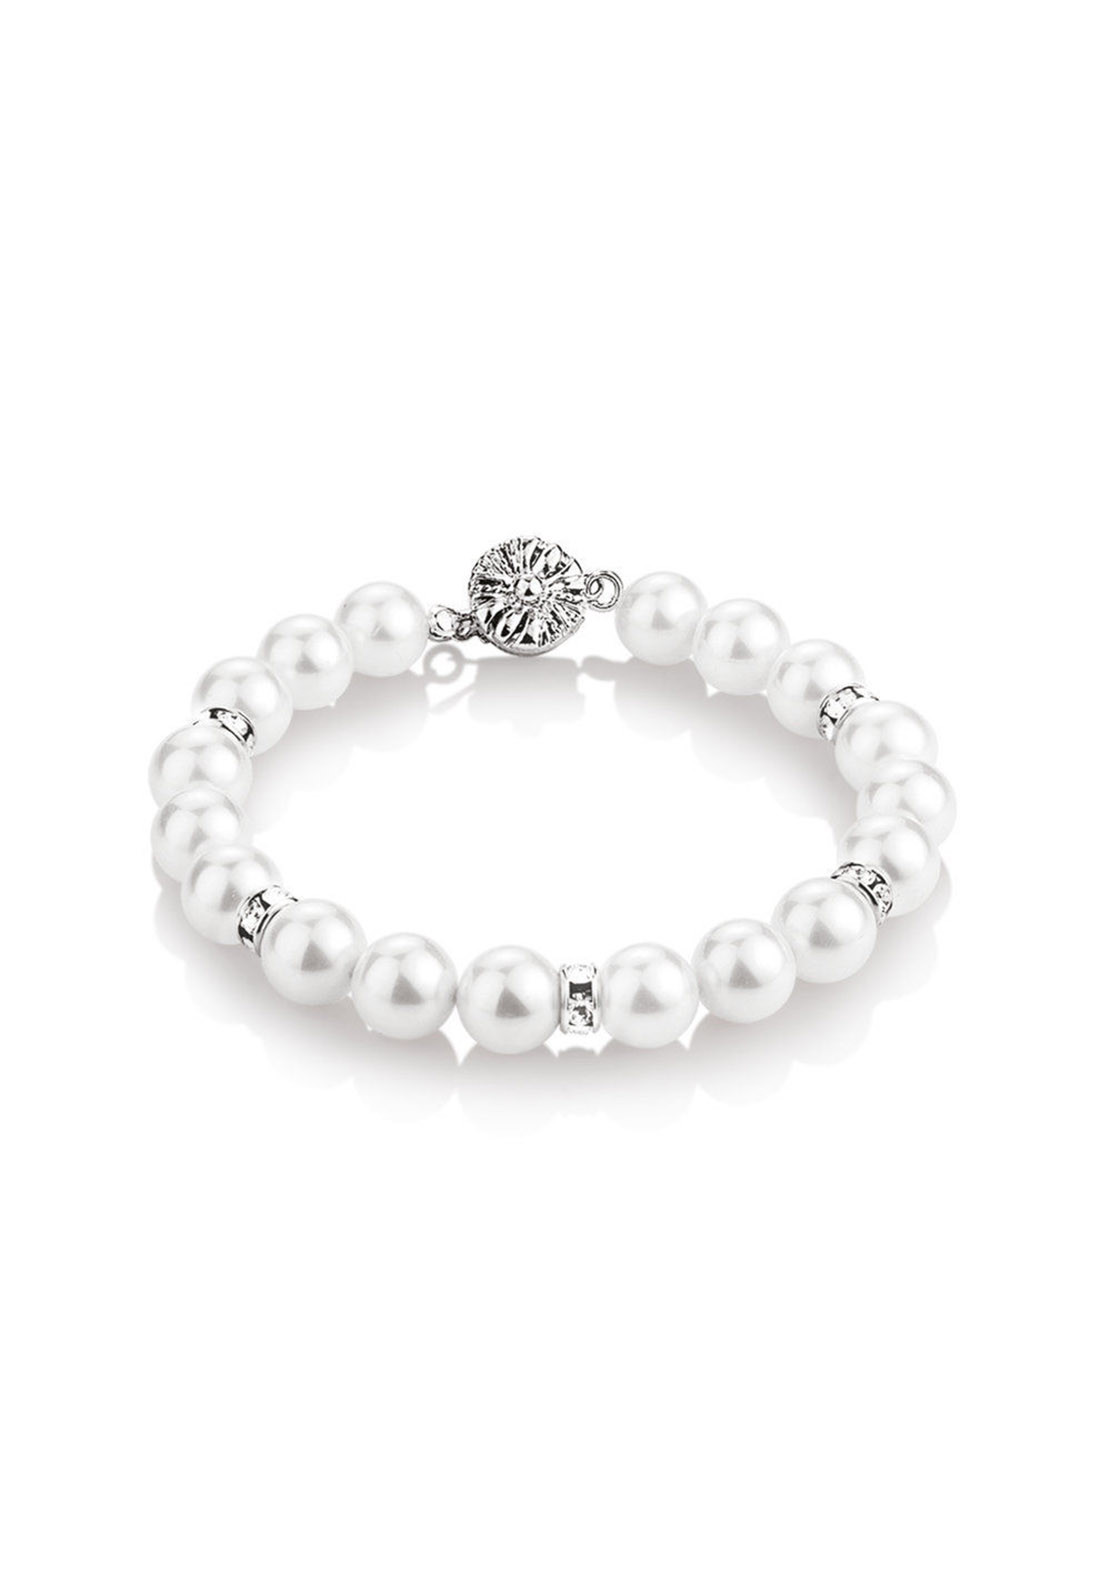 Newbridge Princess Grace Collection Bracelet, Pearl